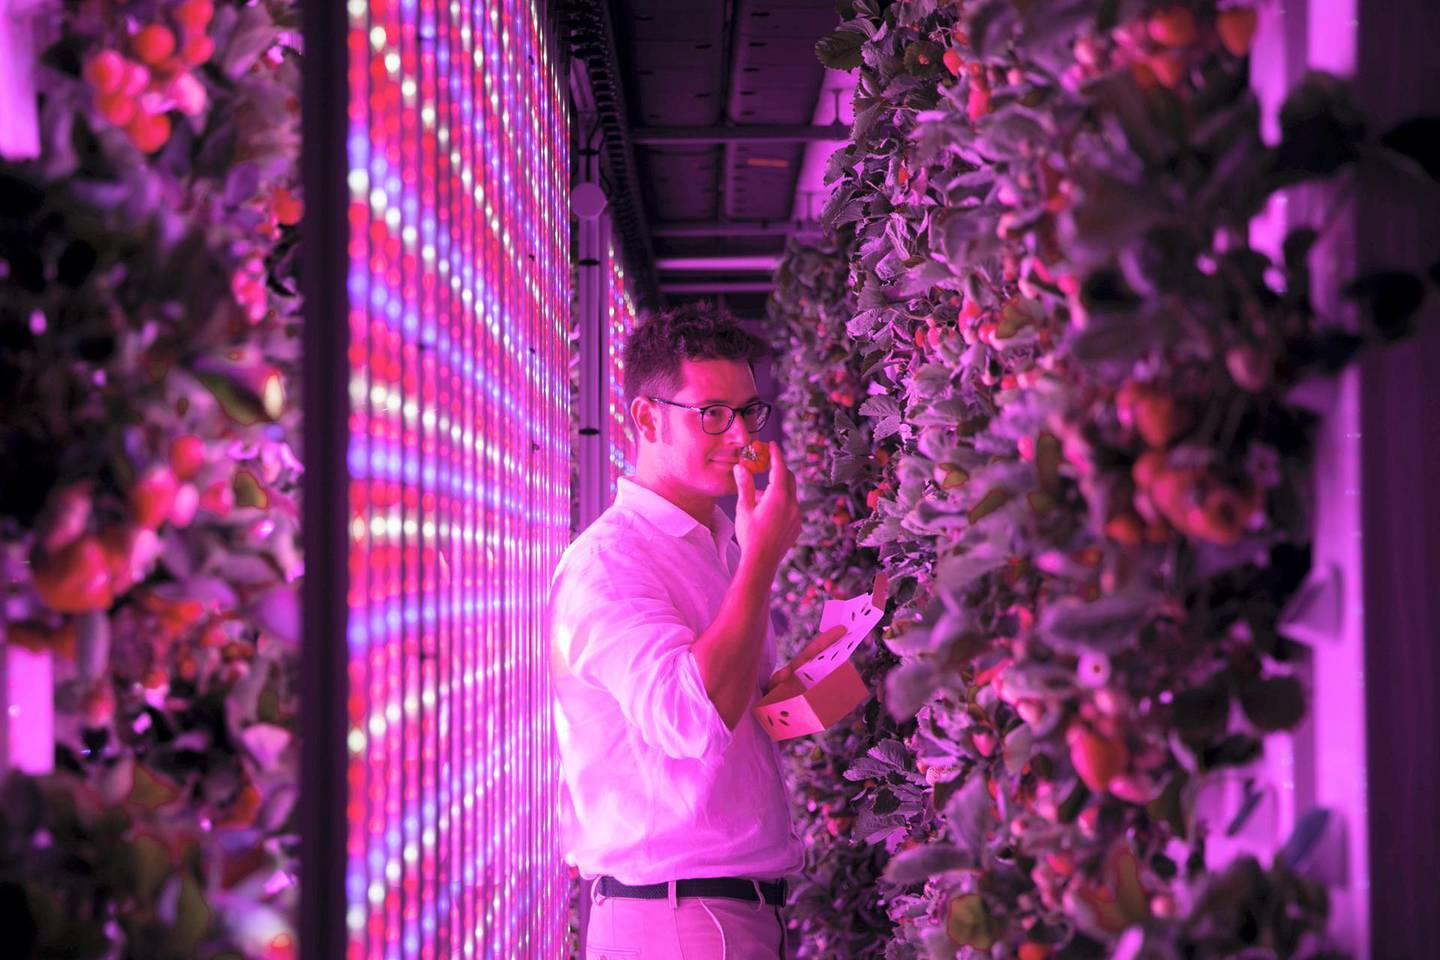 DUBAI, UNITED ARAB EMIRATES - SEPTEMBER 17, 2018. Georges Beaudoin, International Operations Manager, Agricool. Agricool grows strawberries in a shipping container in Sustainable City.Agricool is a french start-up that grows fruits and vegetables inside shipping containers, where they grow without pesticide, minimum water and nutrition intake, no GMOs, and are harvested the day you will purchase. (Photo by Reem Mohammed/The National)Reporter: LIZ COOKMANSection: NA